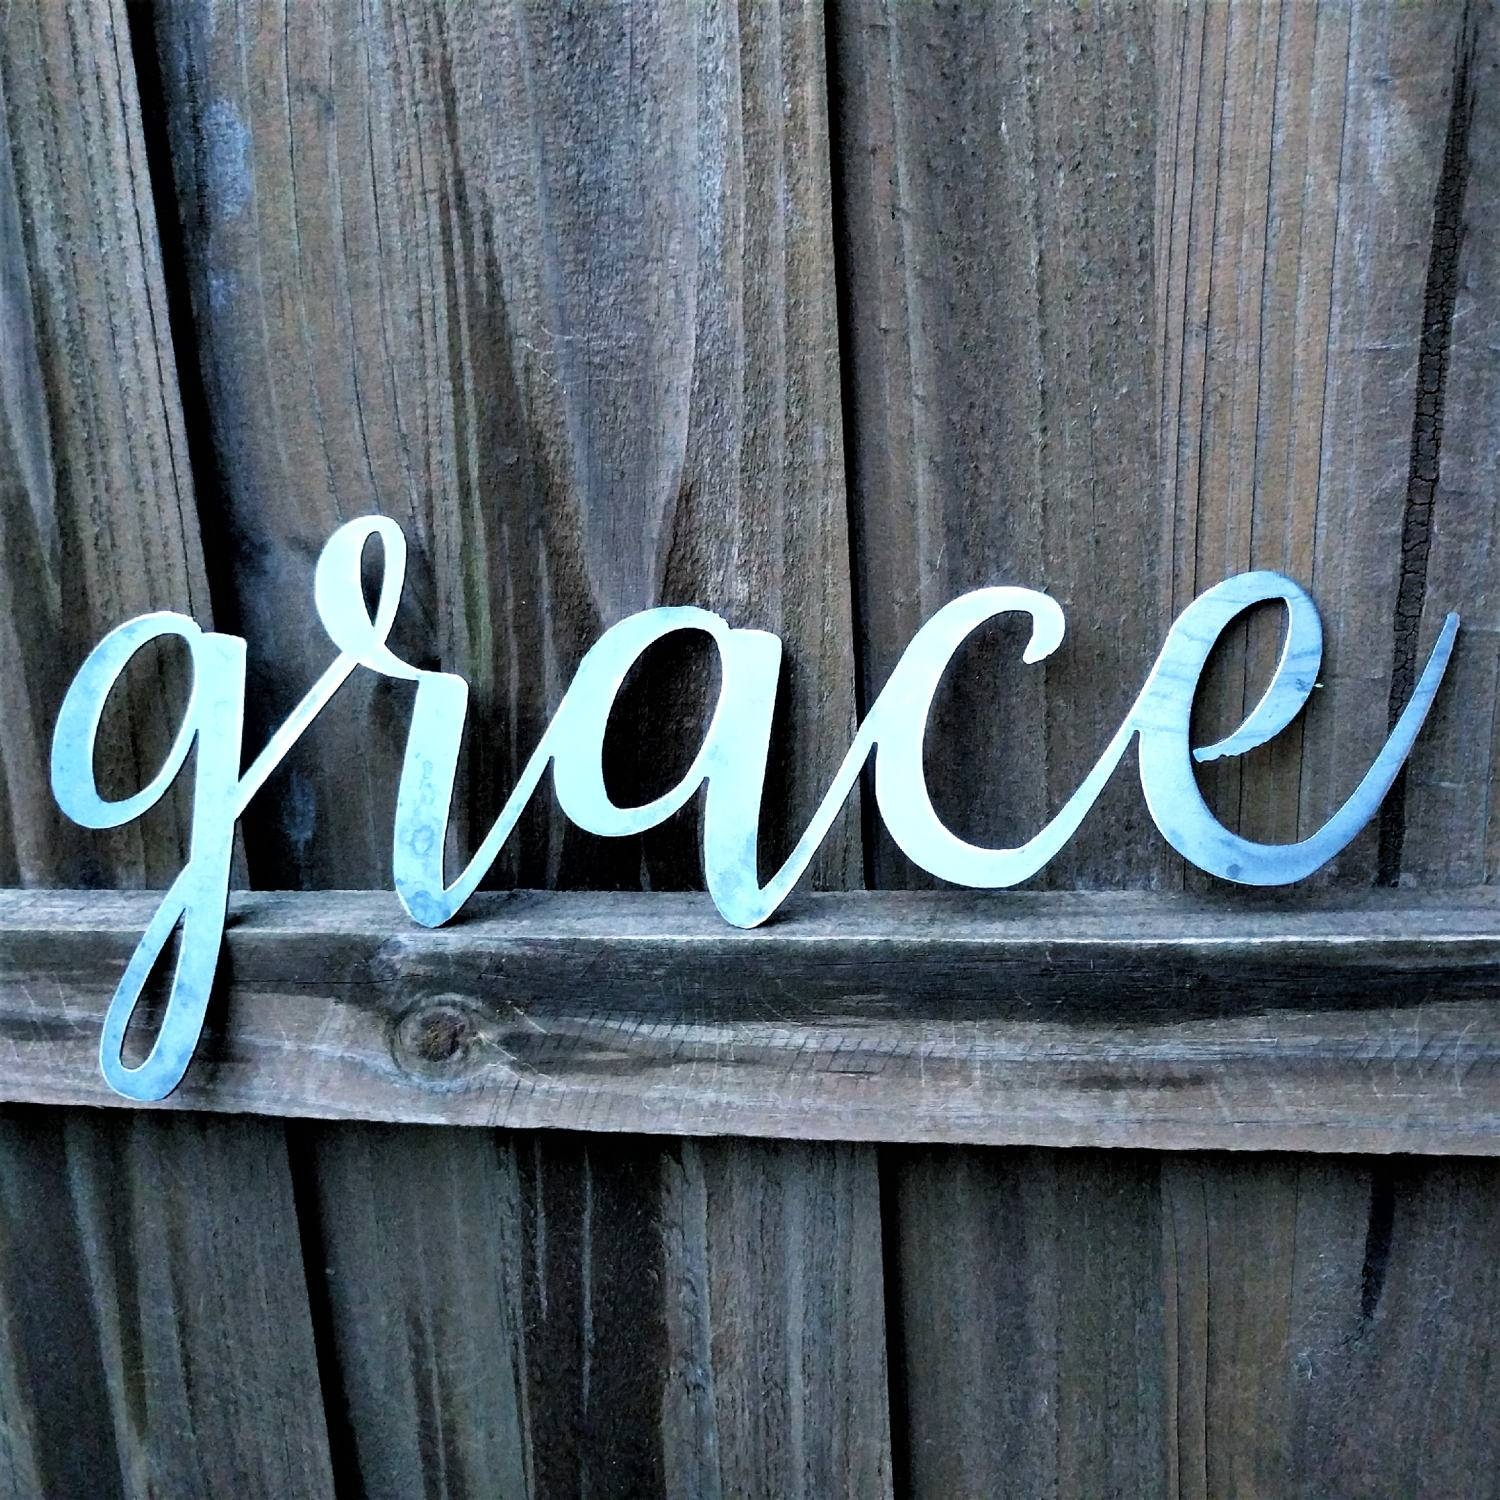 Grace Sign, Metal Farmhouse Sign, Metal Letters, Metal Wall Art In Best And Newest Metal Word Wall Art (View 16 of 20)